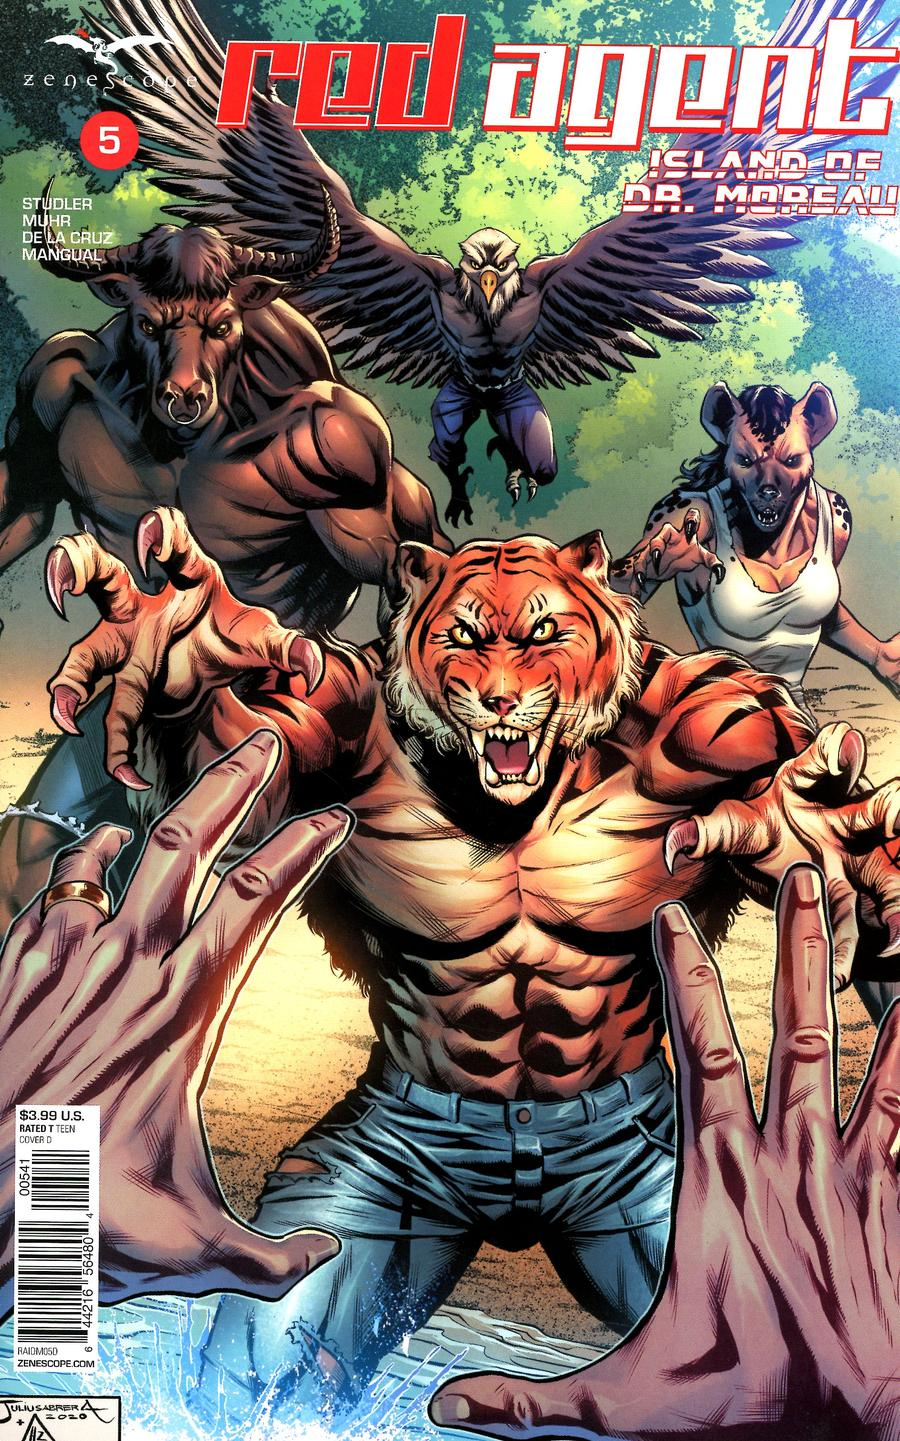 Grimm Fairy Tales Presents Red Agent Island Of Dr Moreau #5 Cover D Julius Abrera